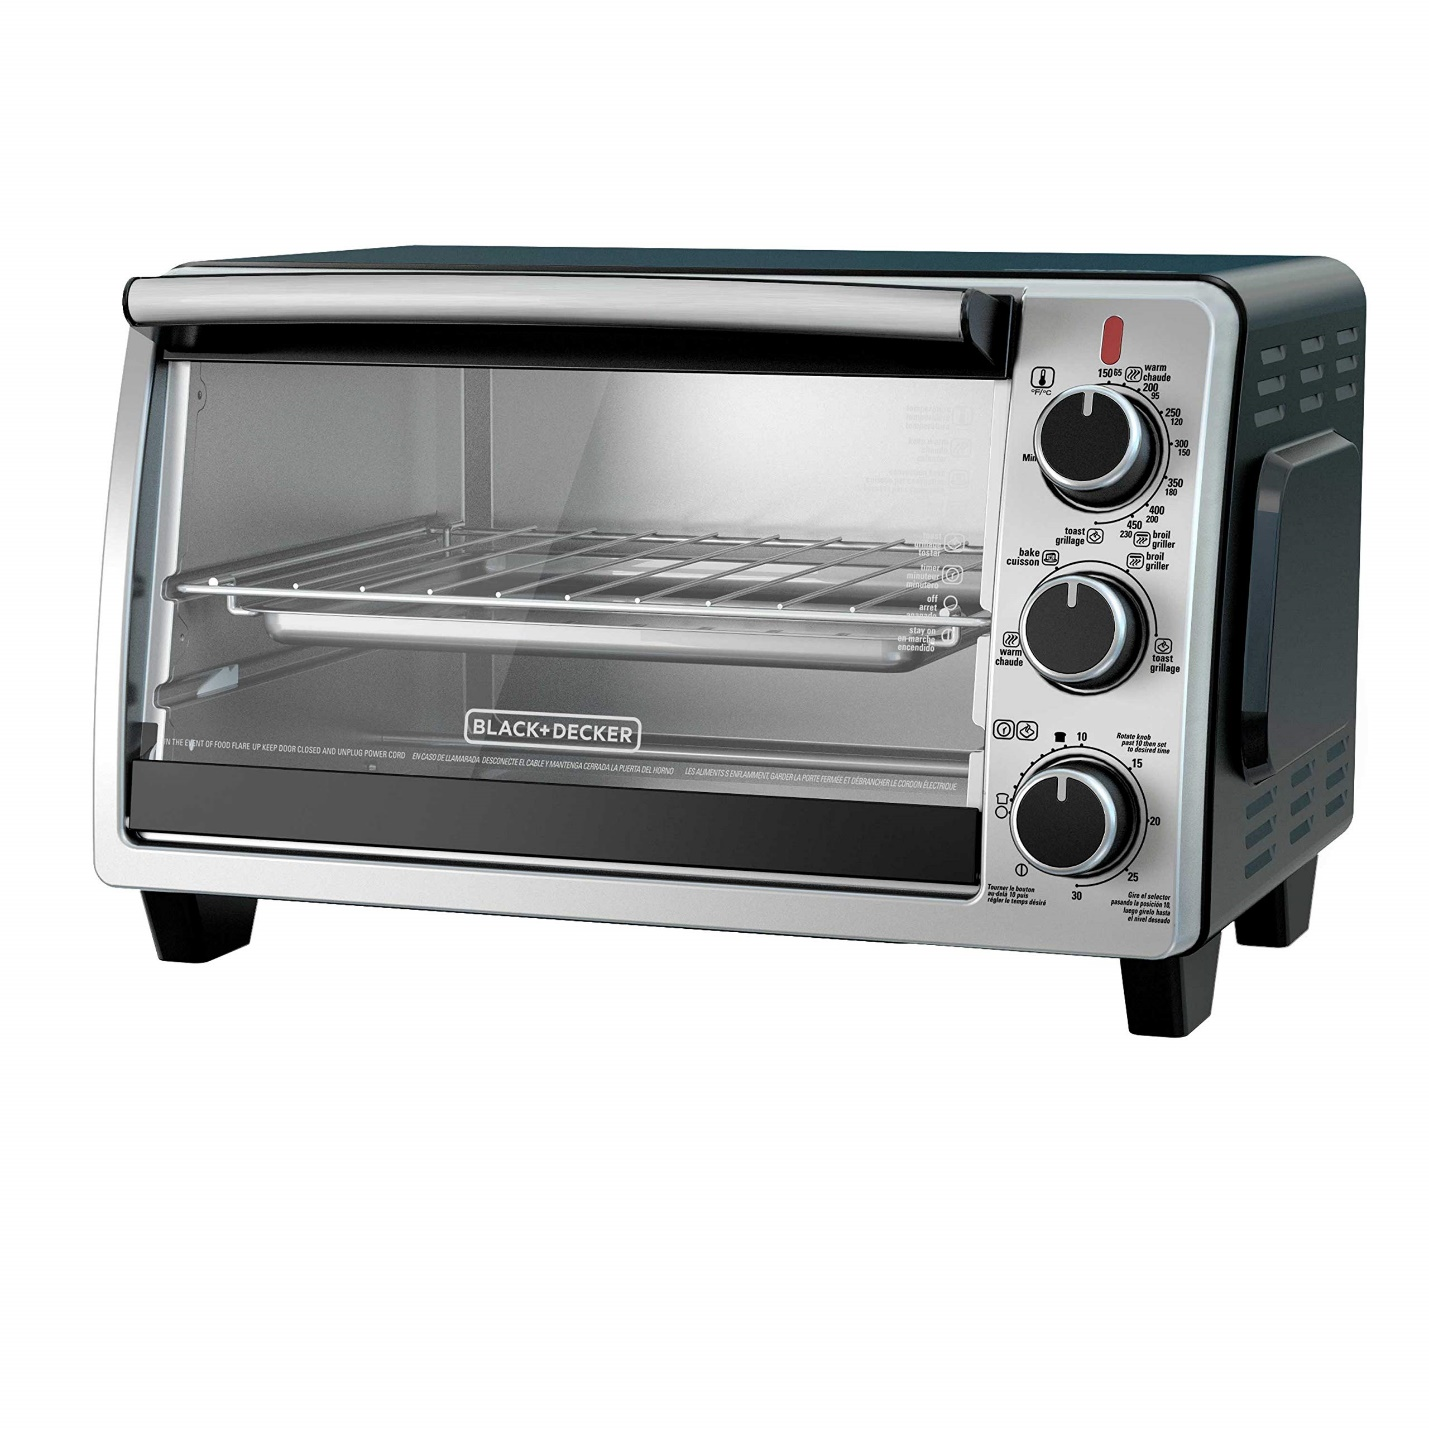 BLACK+DECKER TO1950SBD 6-Slice Convection Countertop Toaster Oven